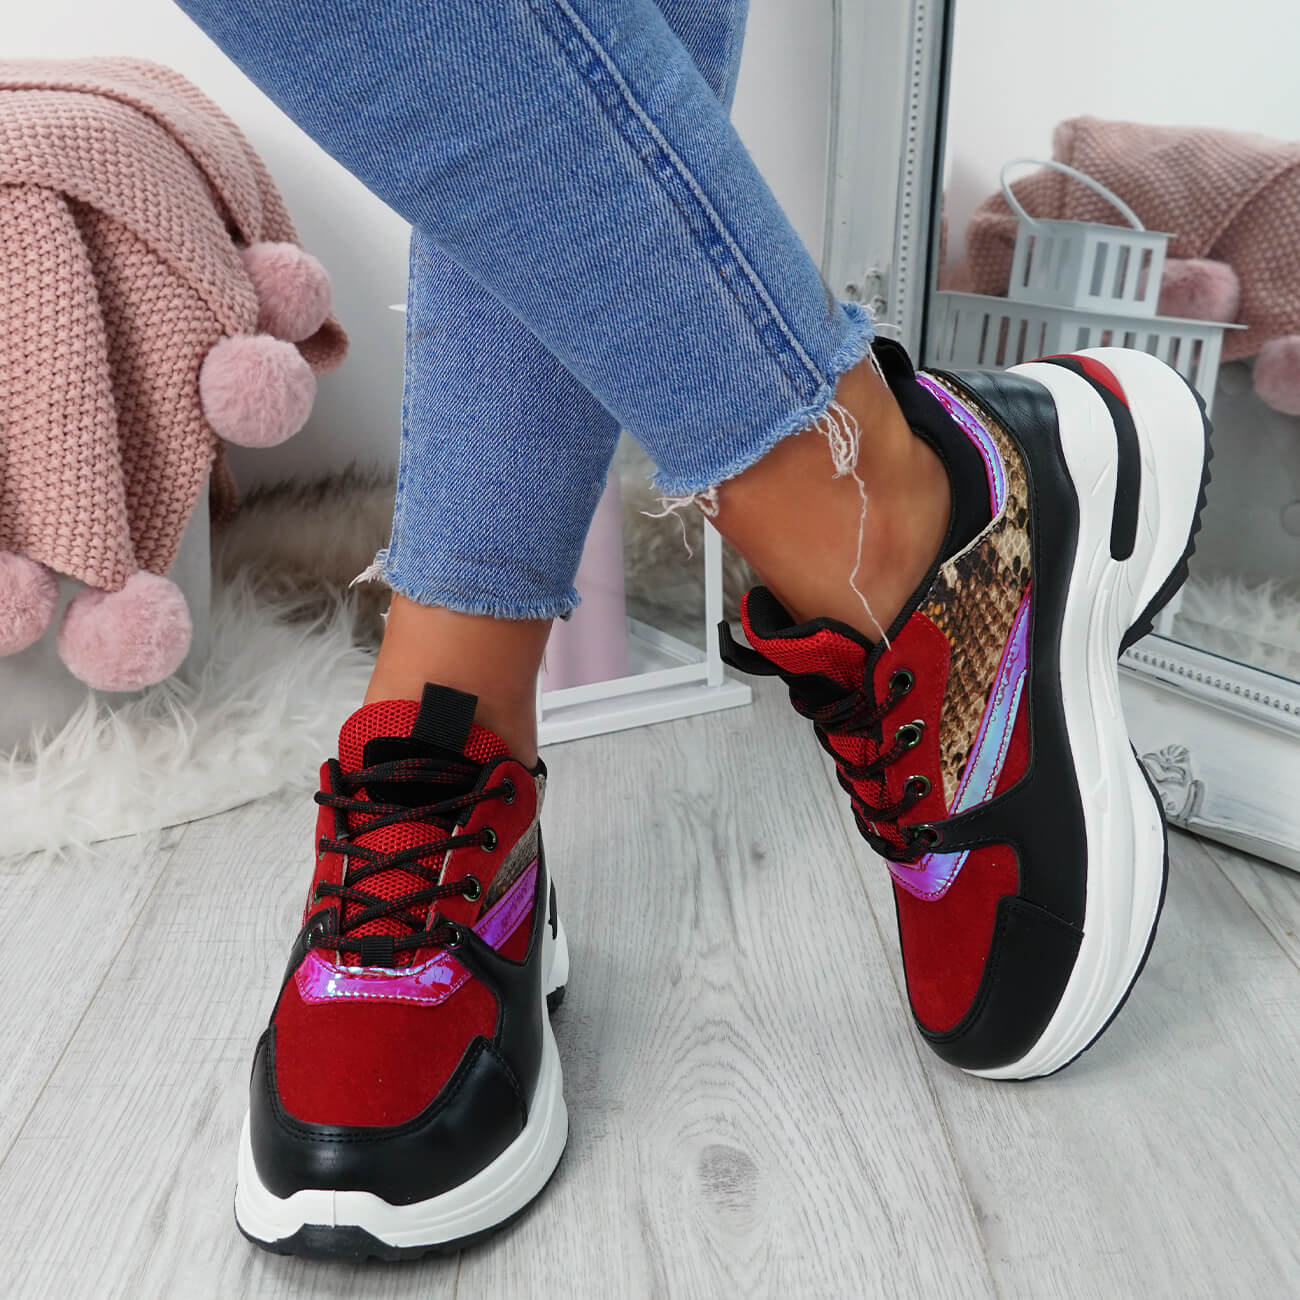 WOMENS-LADIES-LACE-UP-CHUNKY-TRAINERS-SNAKE-CROC-PATTERN-GLITTER-SHOES-SNEAKERS thumbnail 24